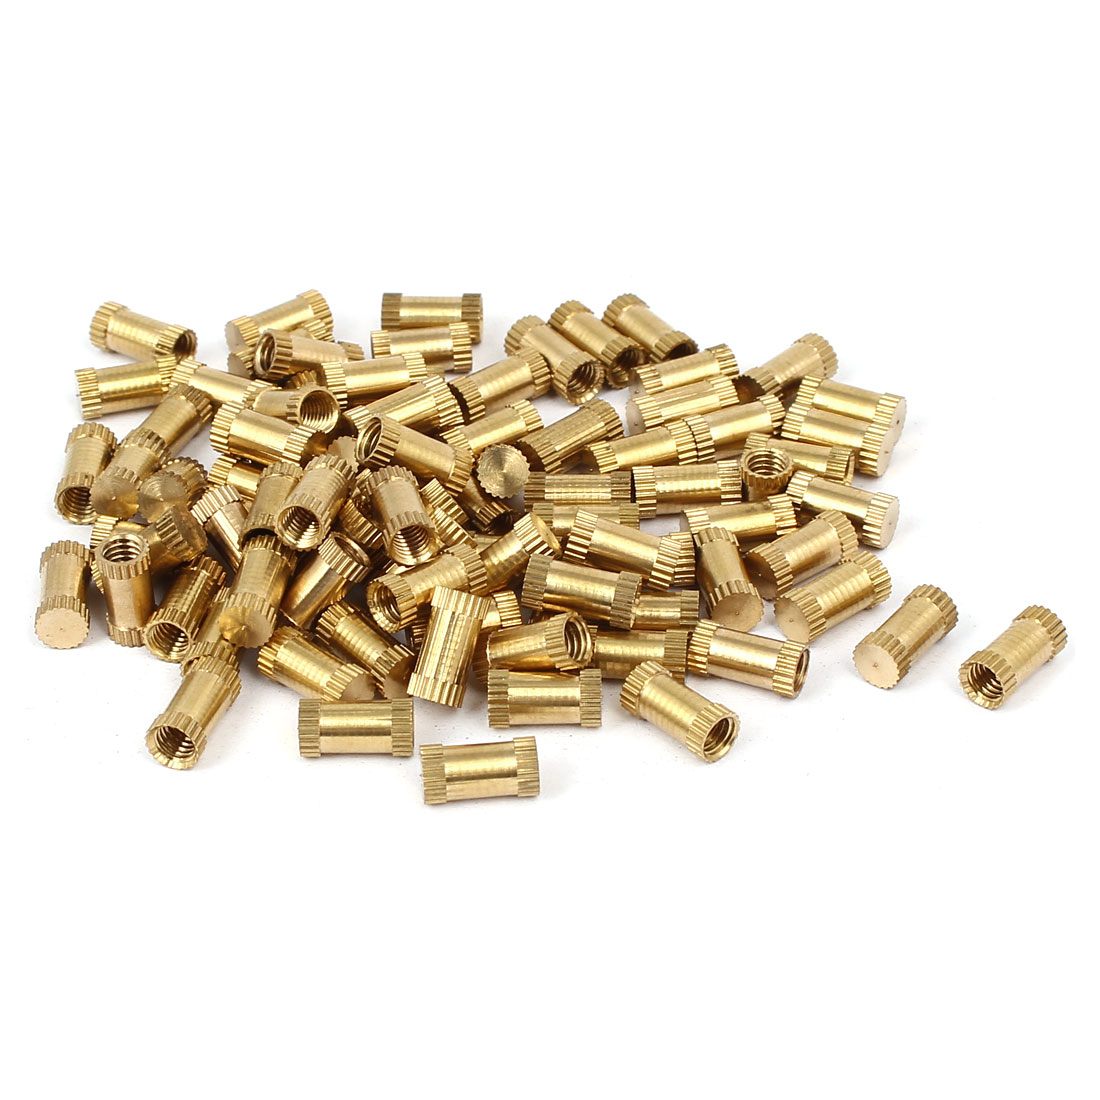 M4 x 10mm 5.3mm OD Brass Threaded Insert Embedment Knurled Thumb Nut 100PCS